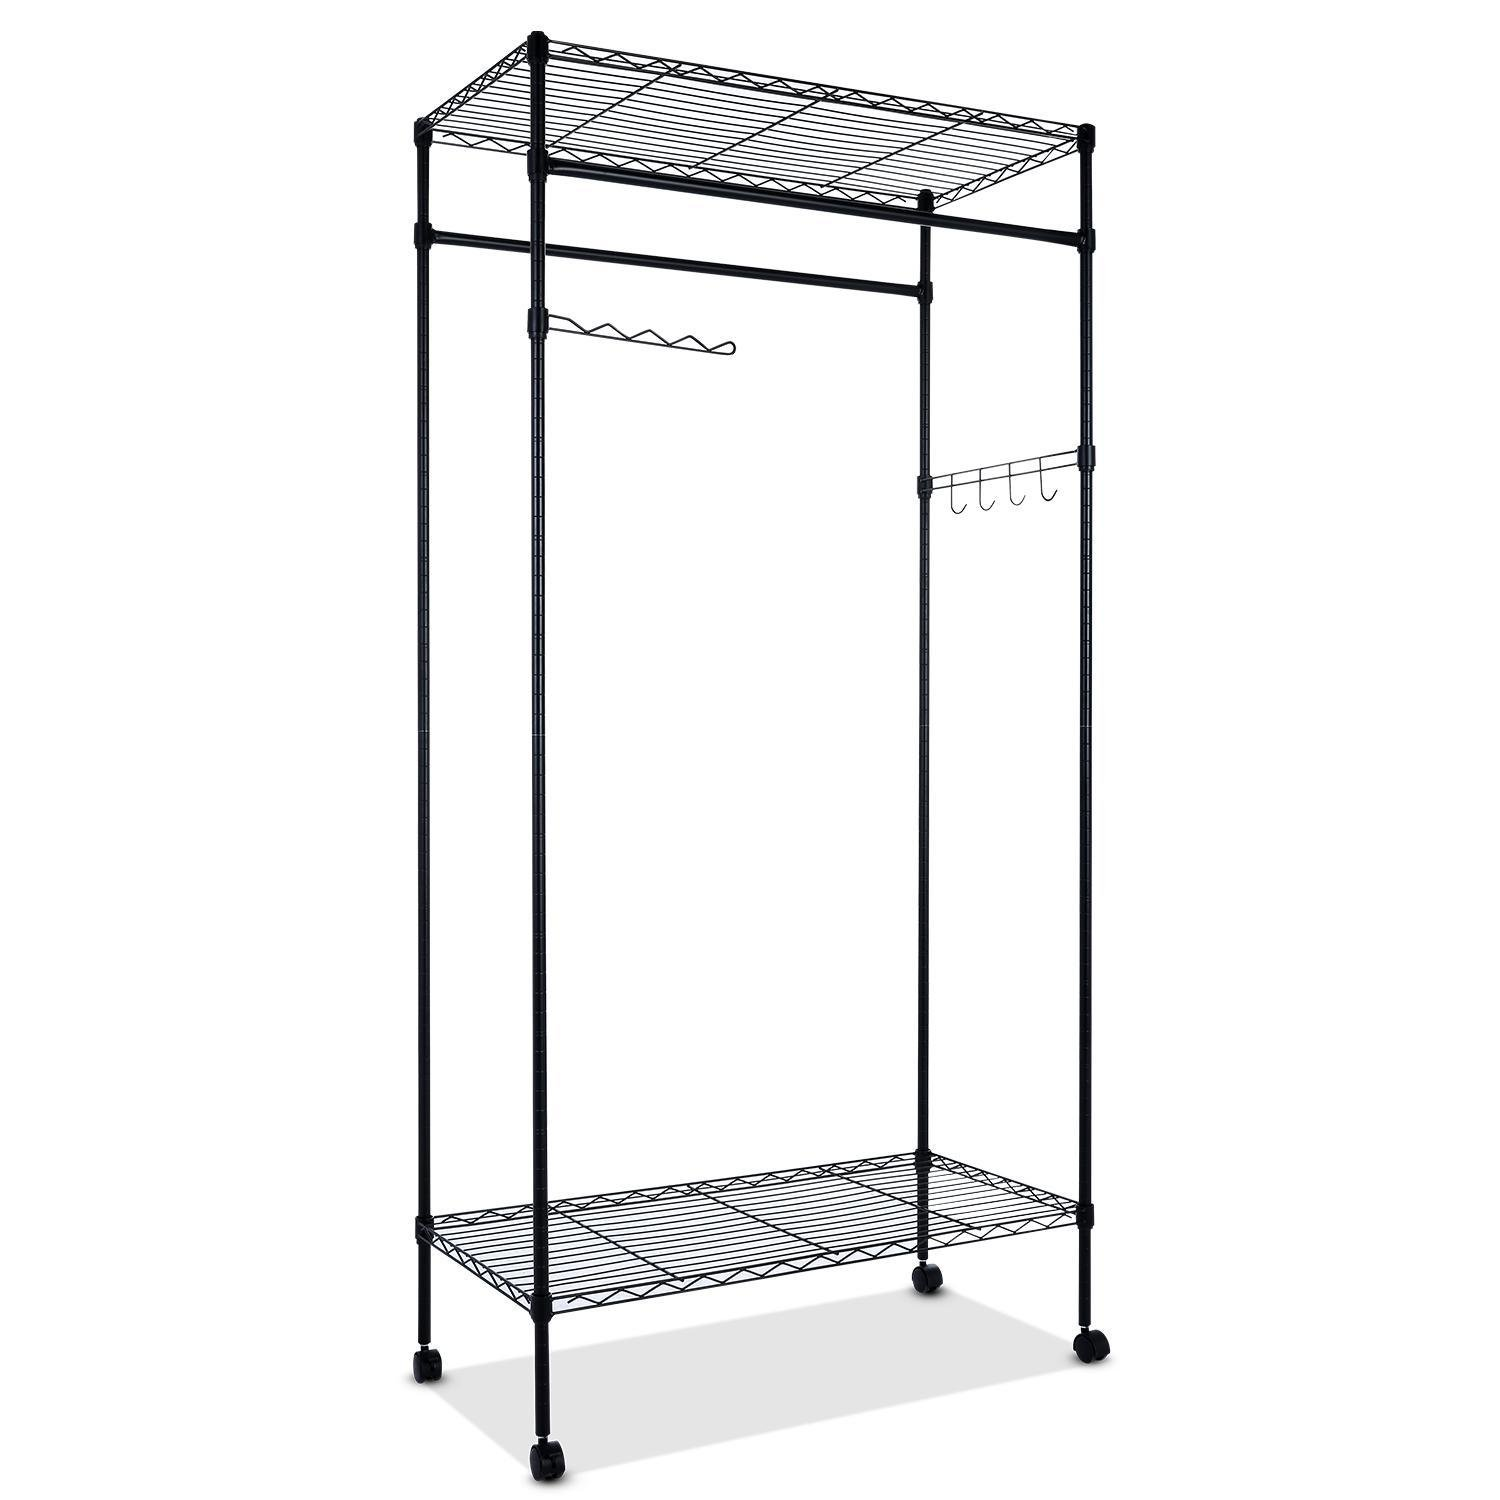 Heavy Duty Rolling Garment Rack with Wheels and Shelves, Portable Clothes Wardrobe Clothing Rack Home Closet Hanger Storage Organizer (US STOCK)